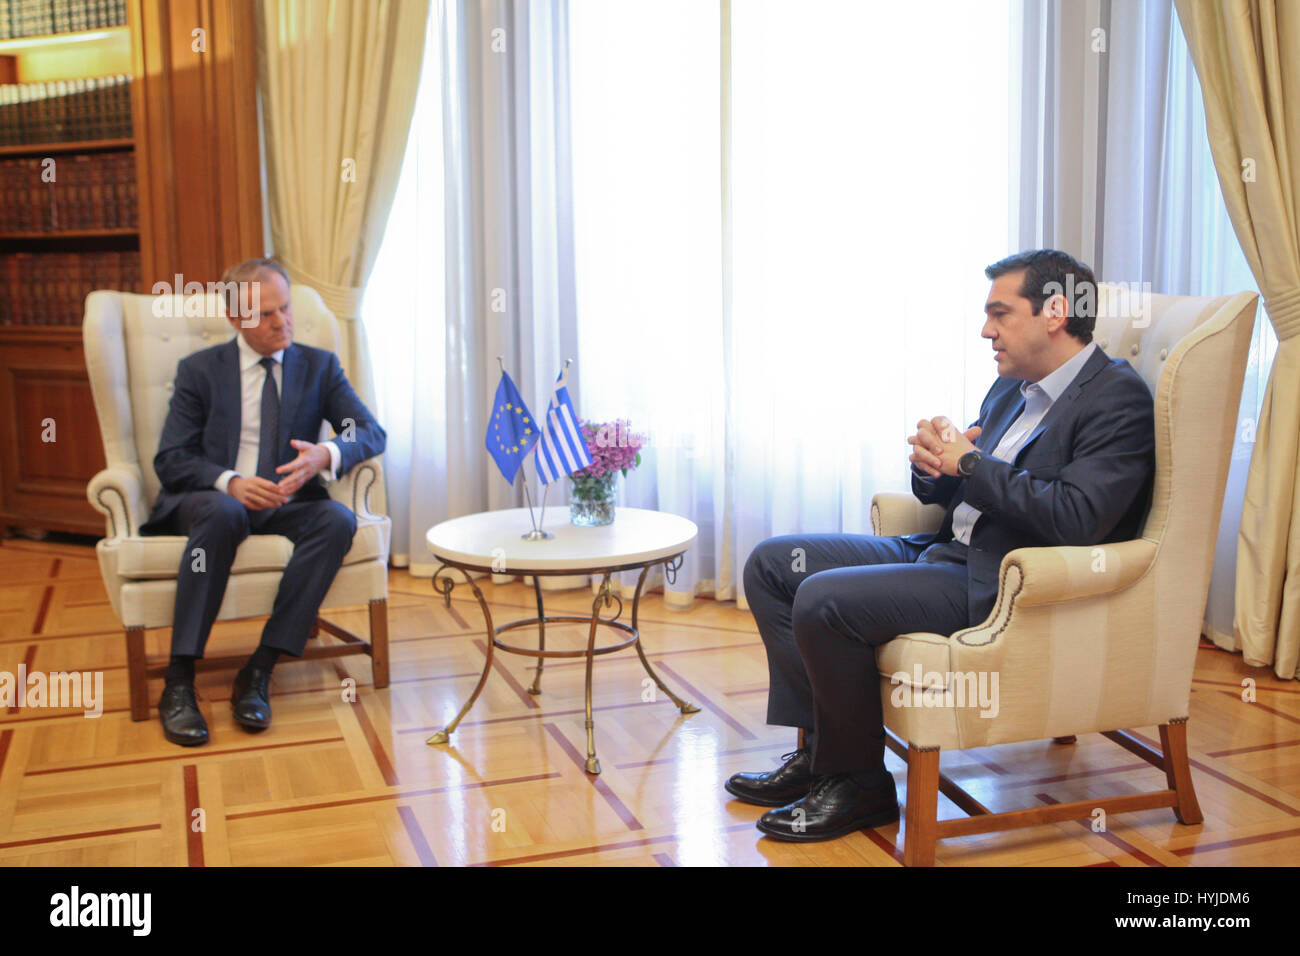 Athens, Greece. 5th Apr, 2017. Greek Prime Minister Alexis Tsipras, right, listens to European Council President - Stock Image